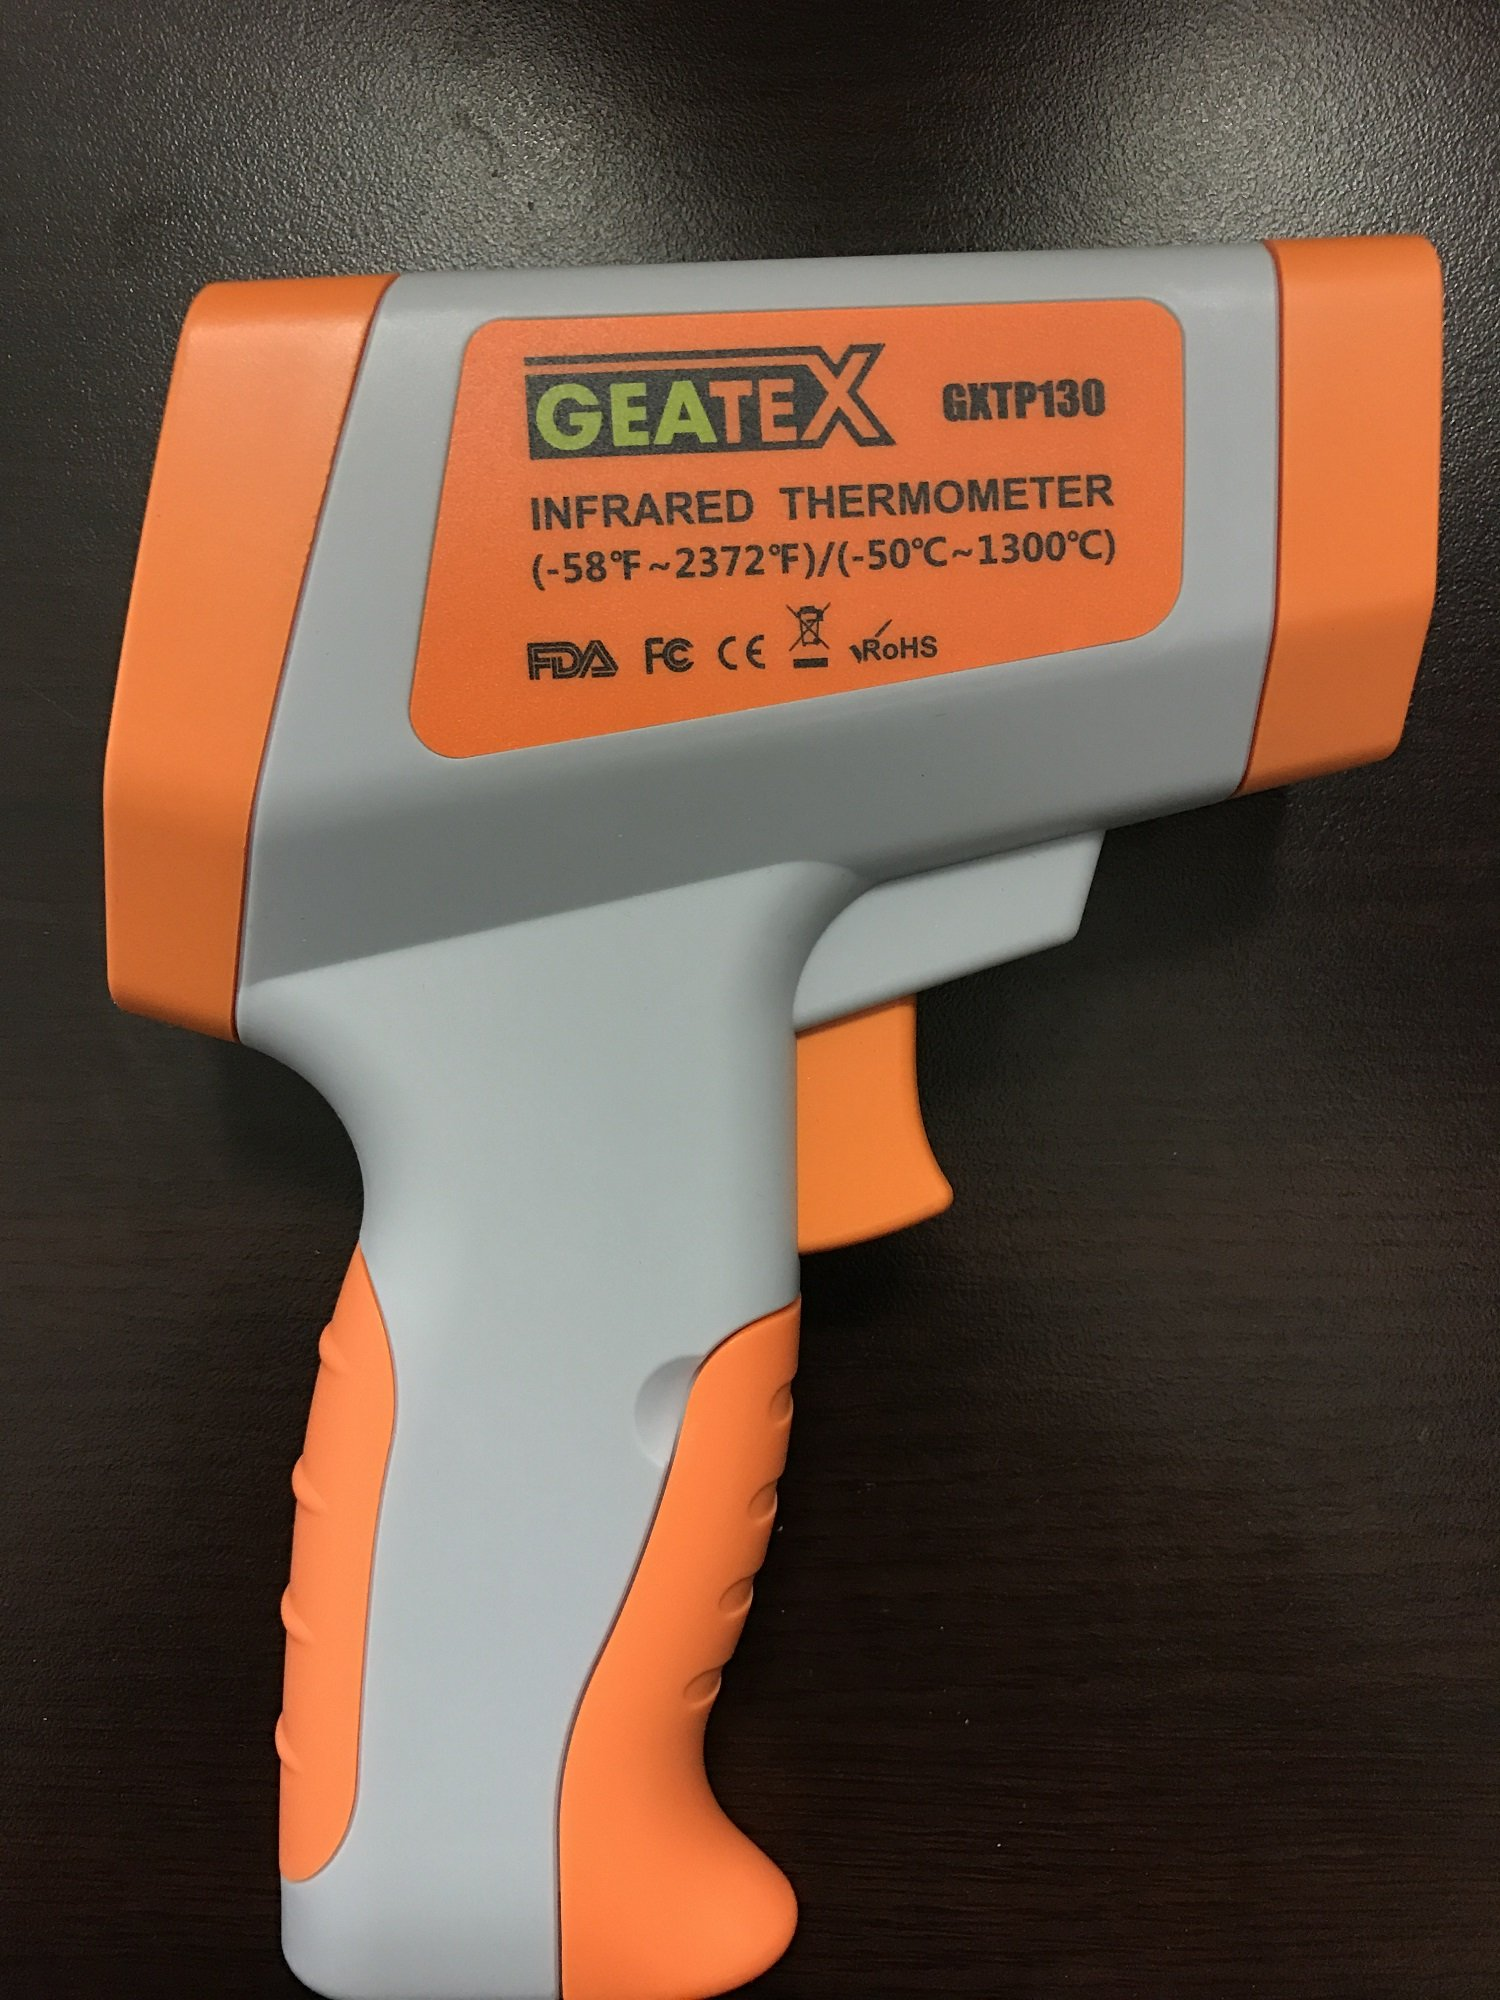 Geatex Professional Lasergrip GXTP130 Non-contact Digital Infrared Thermometer, Dual Laser Distance Spot Ratio: 50:1